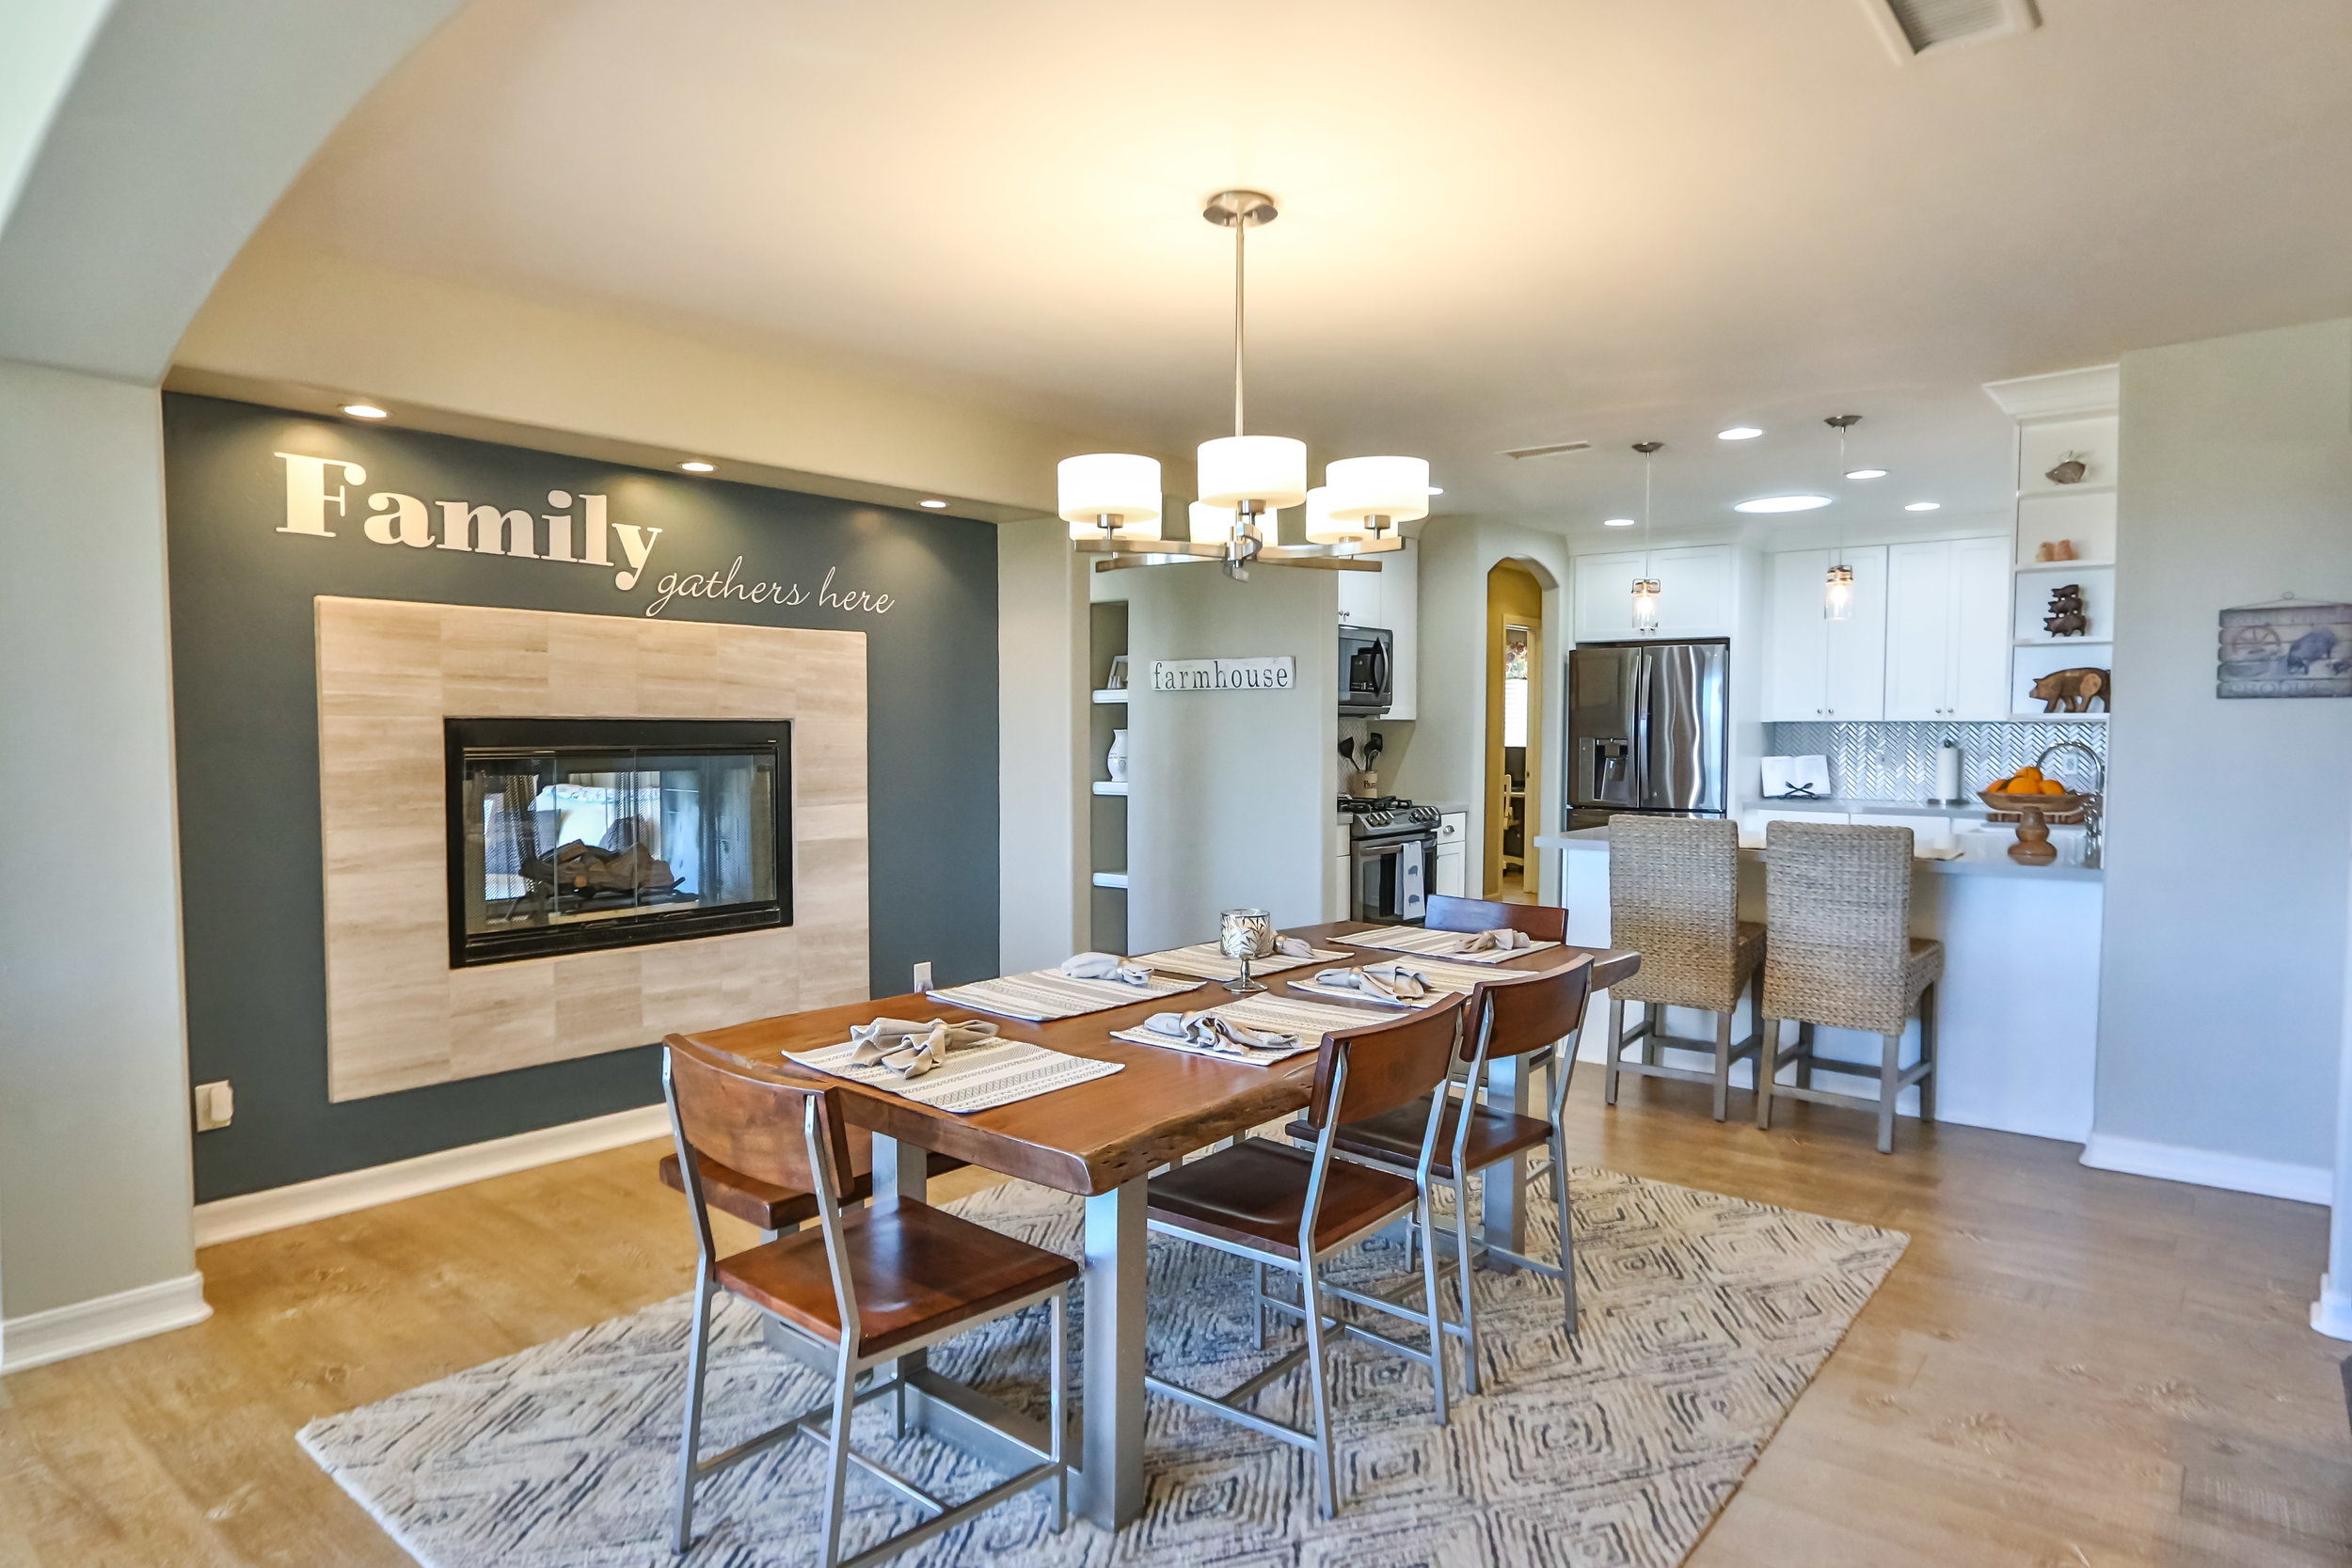 Real Estate - Showcase your home to potential buyers with professional real estate photos.